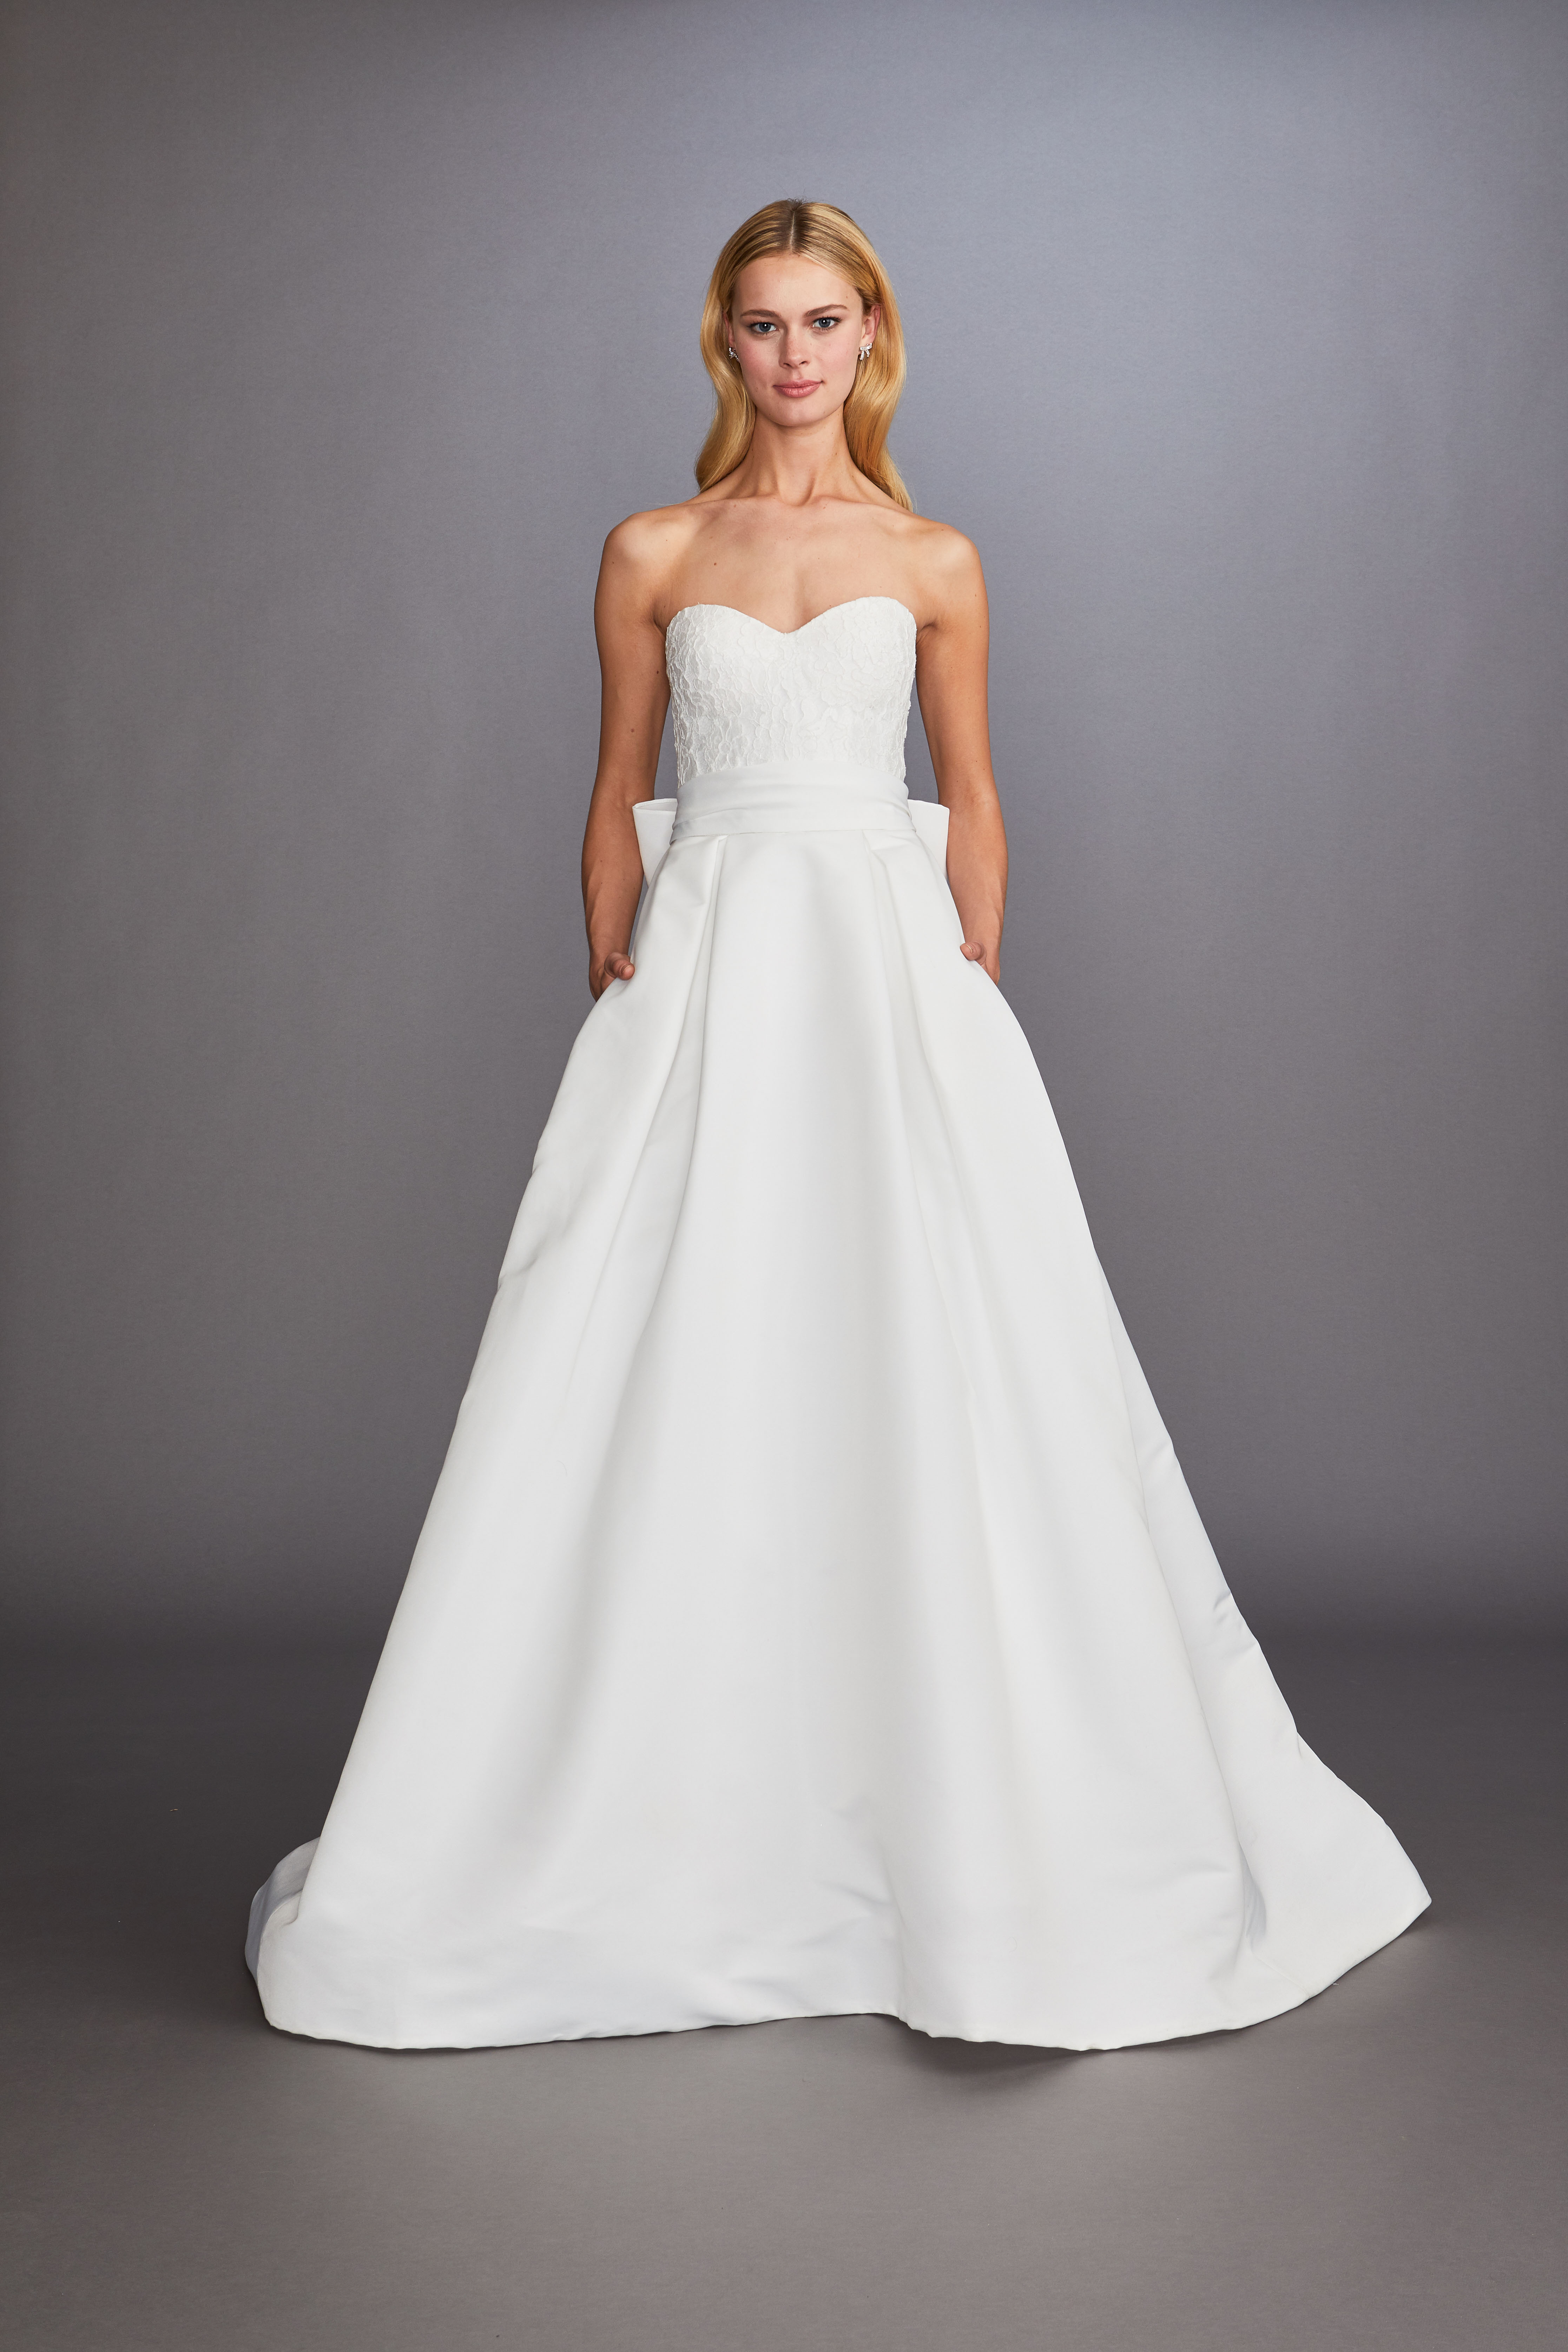 strapless sweetheart neckline a-line wedding dress Allison Webb Spring 2020